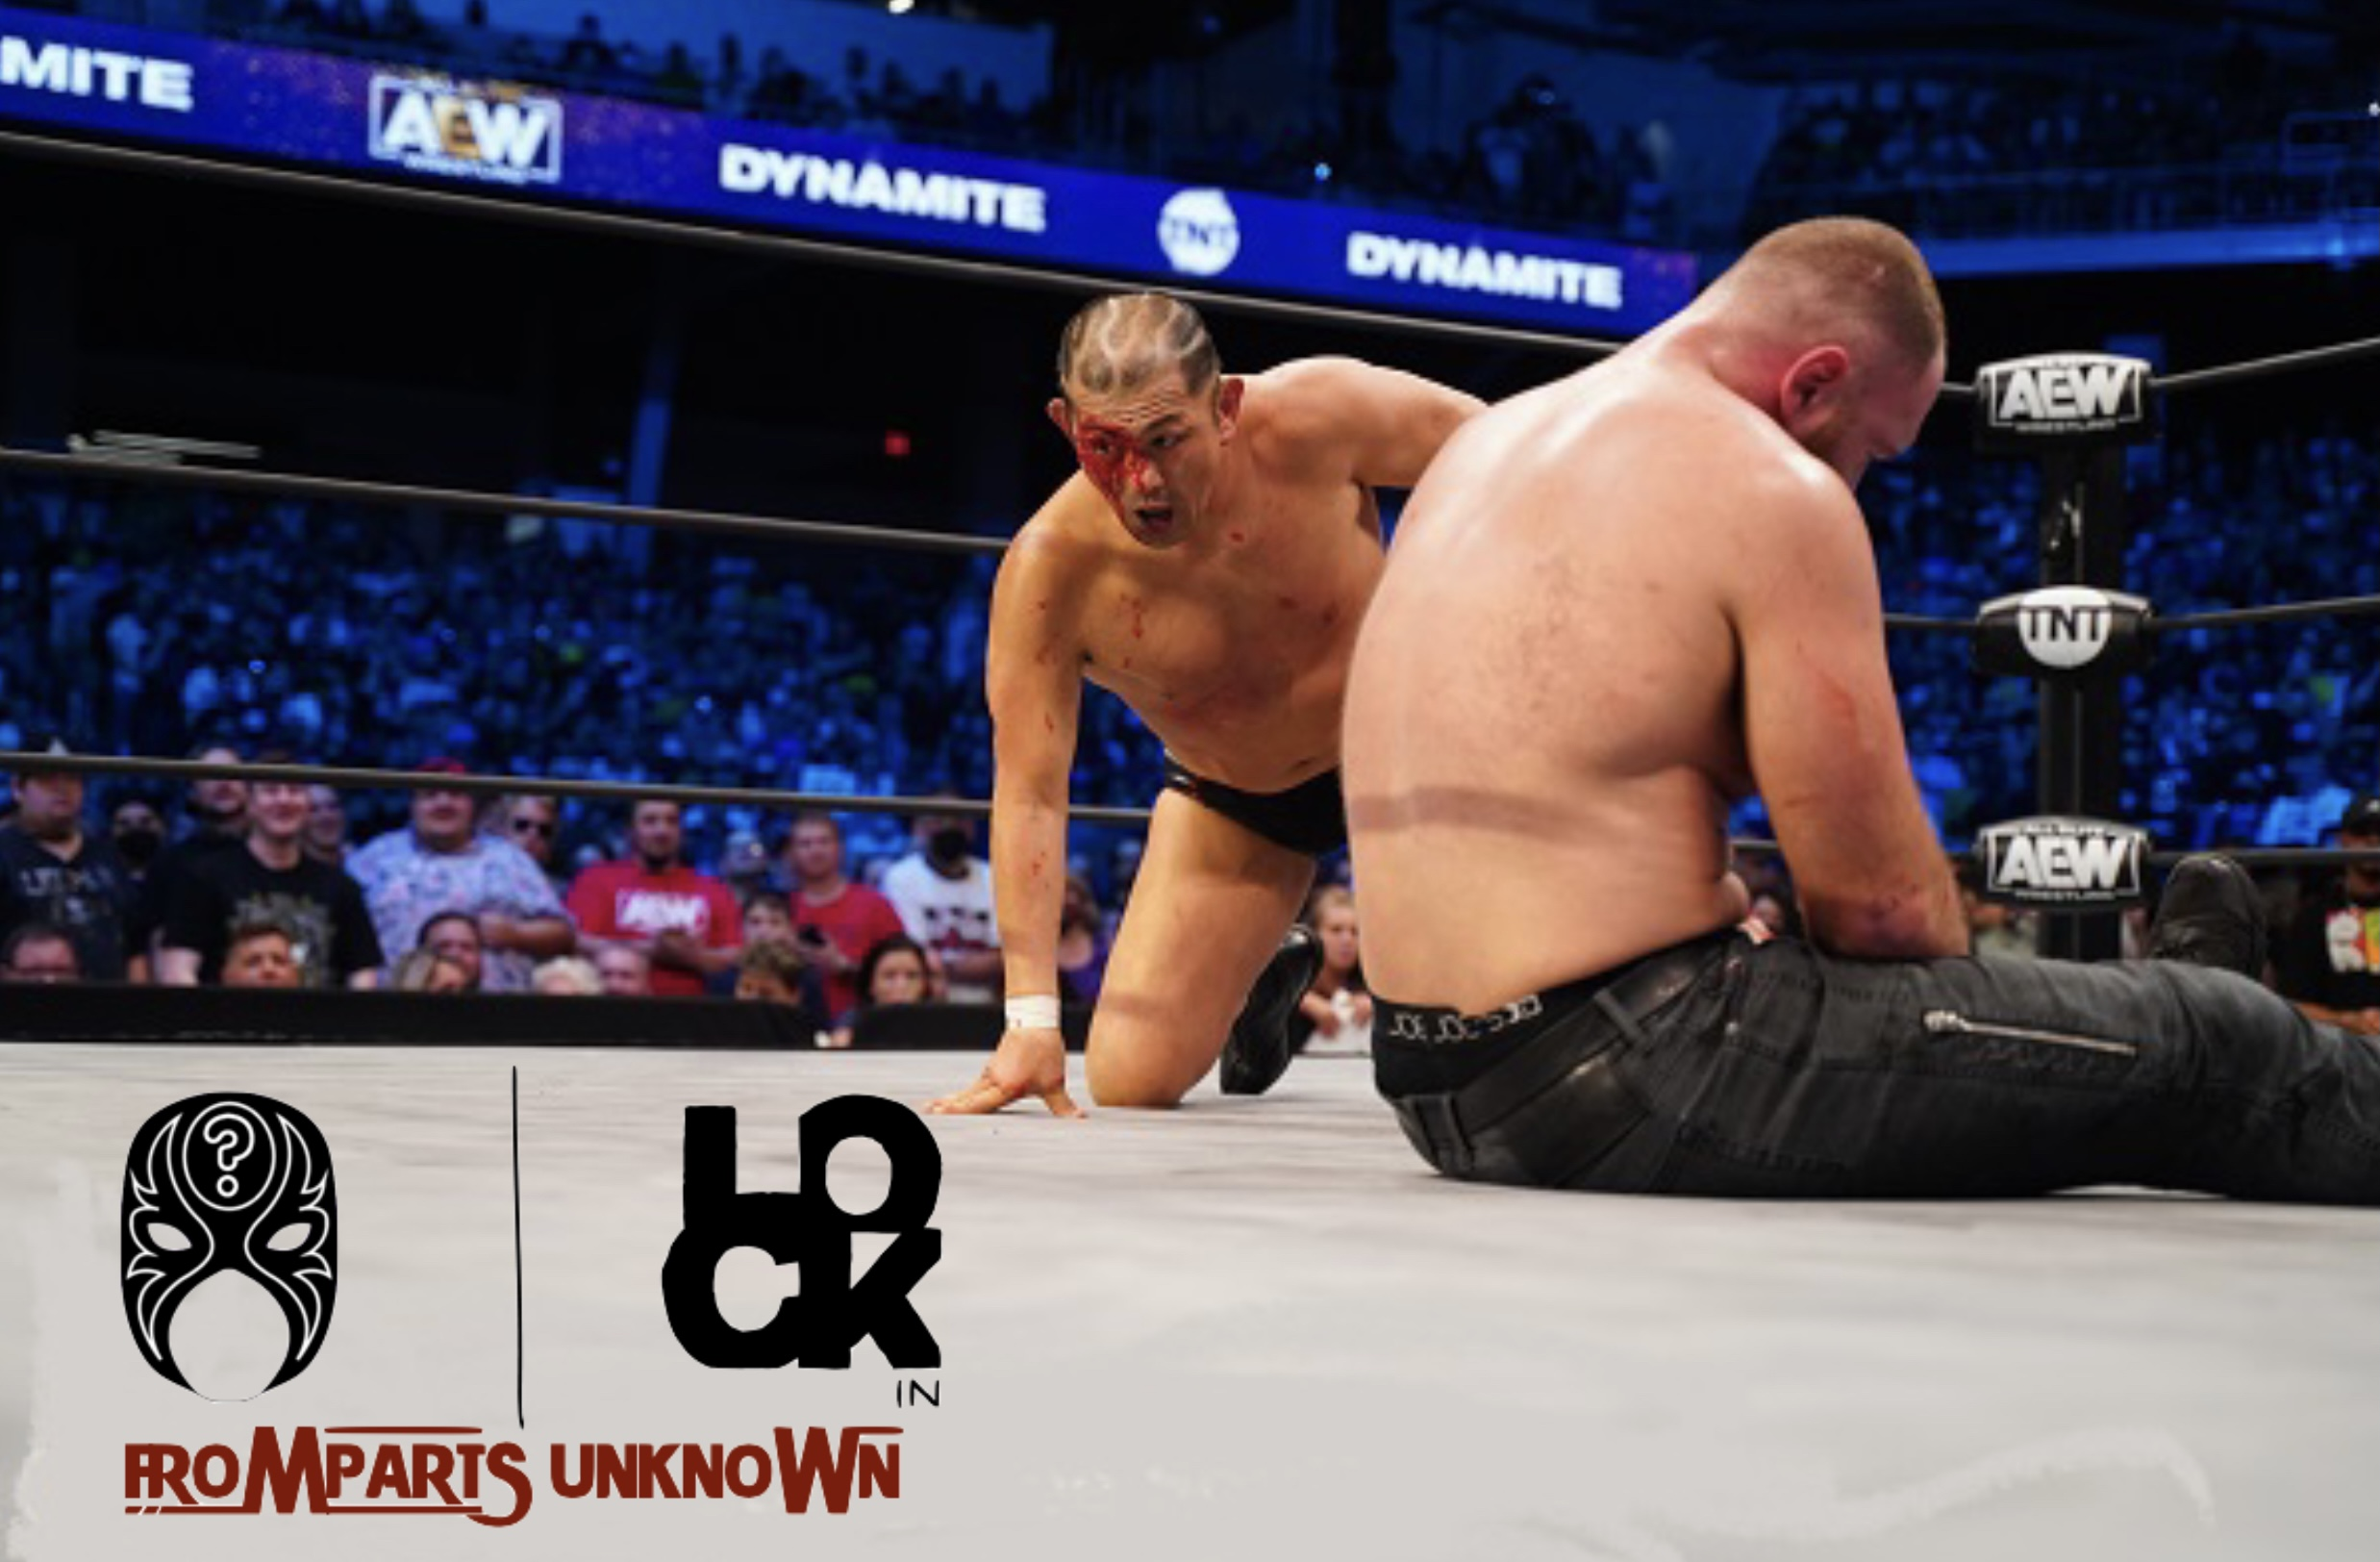 From Parts Unknown 011 - AEW: September 2021